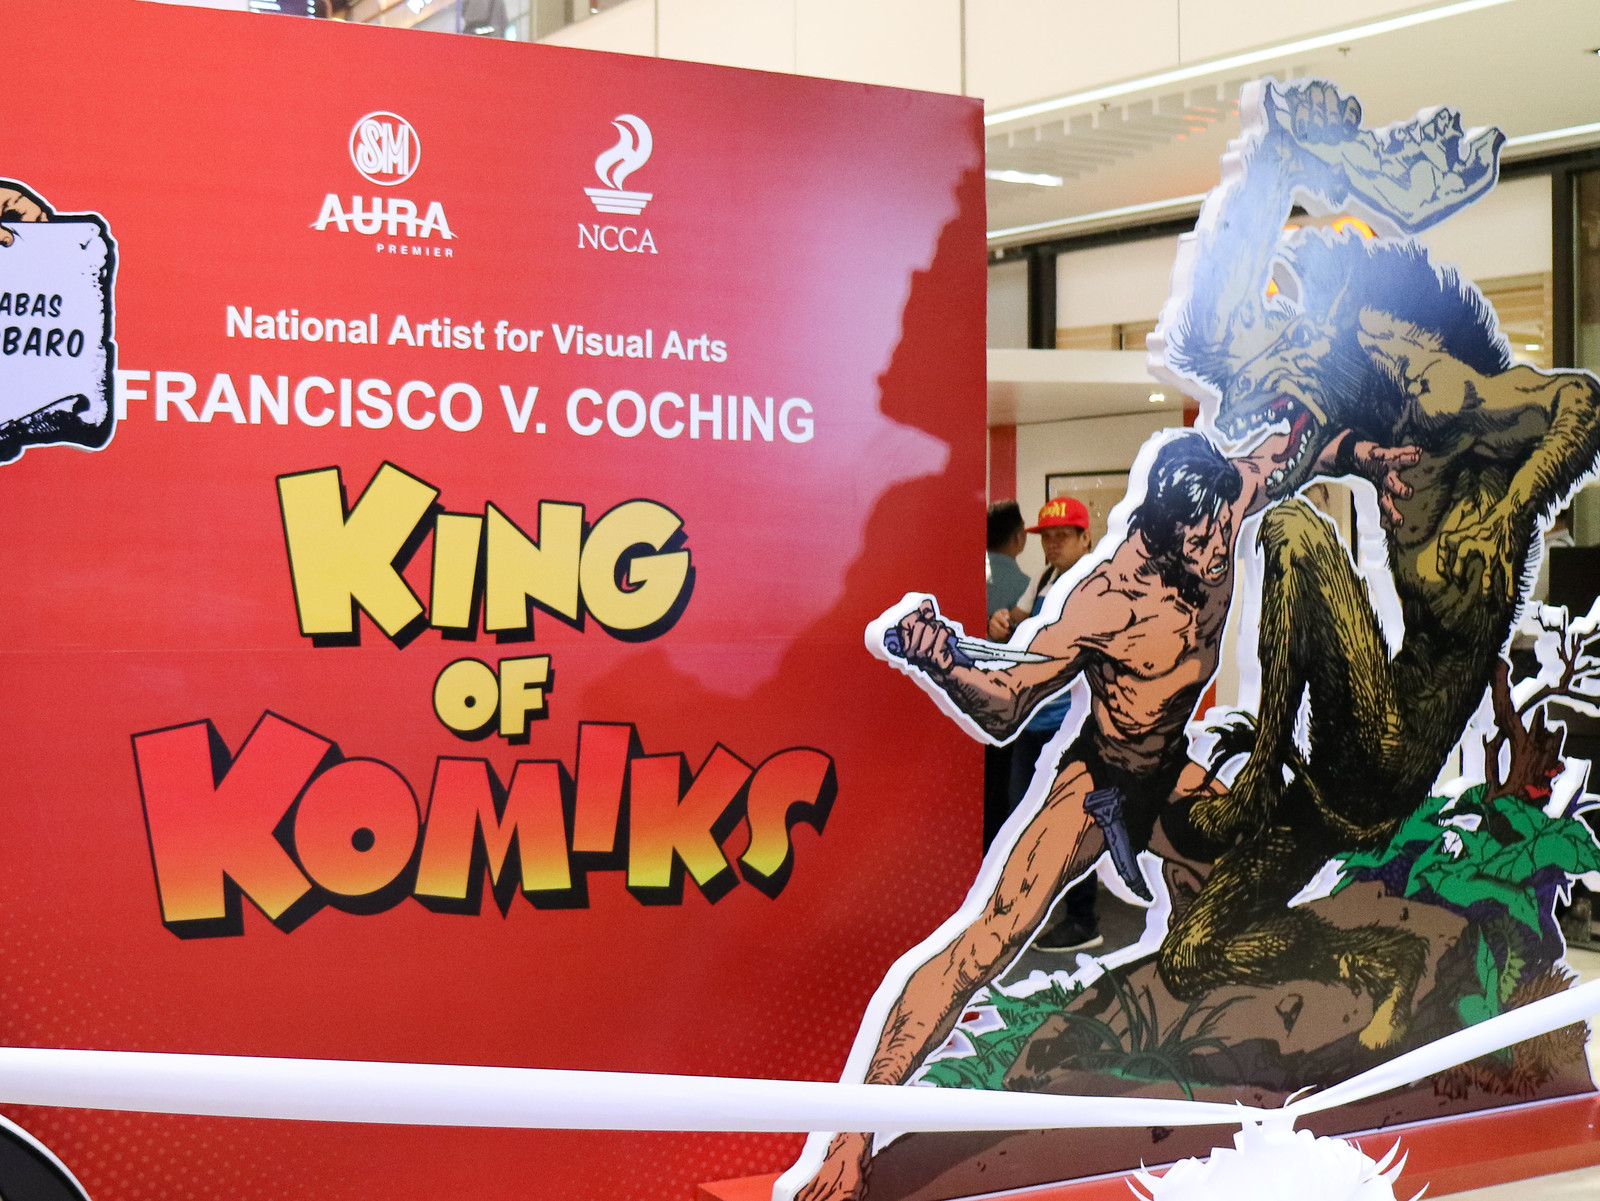 King of Komiks Francisco V. Coching Exhibit is now open at SM Aura